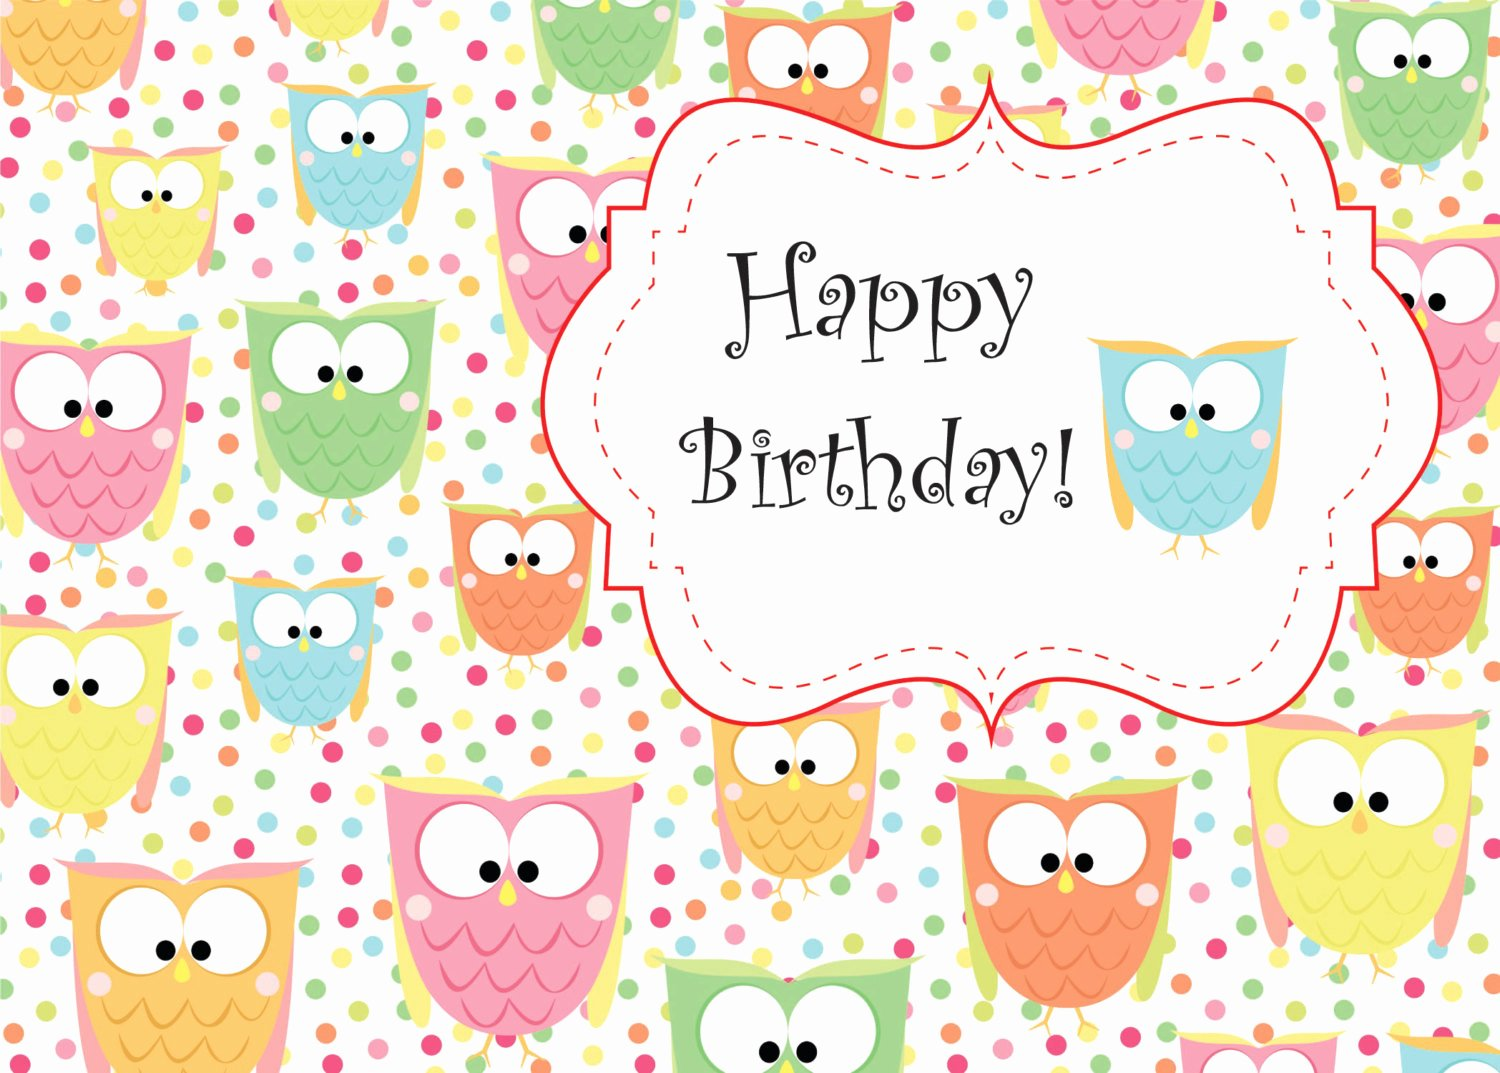 Free Printable Birthday Certificates Unique Amazing Birthday Wishes that Can Make Your Dear Friend